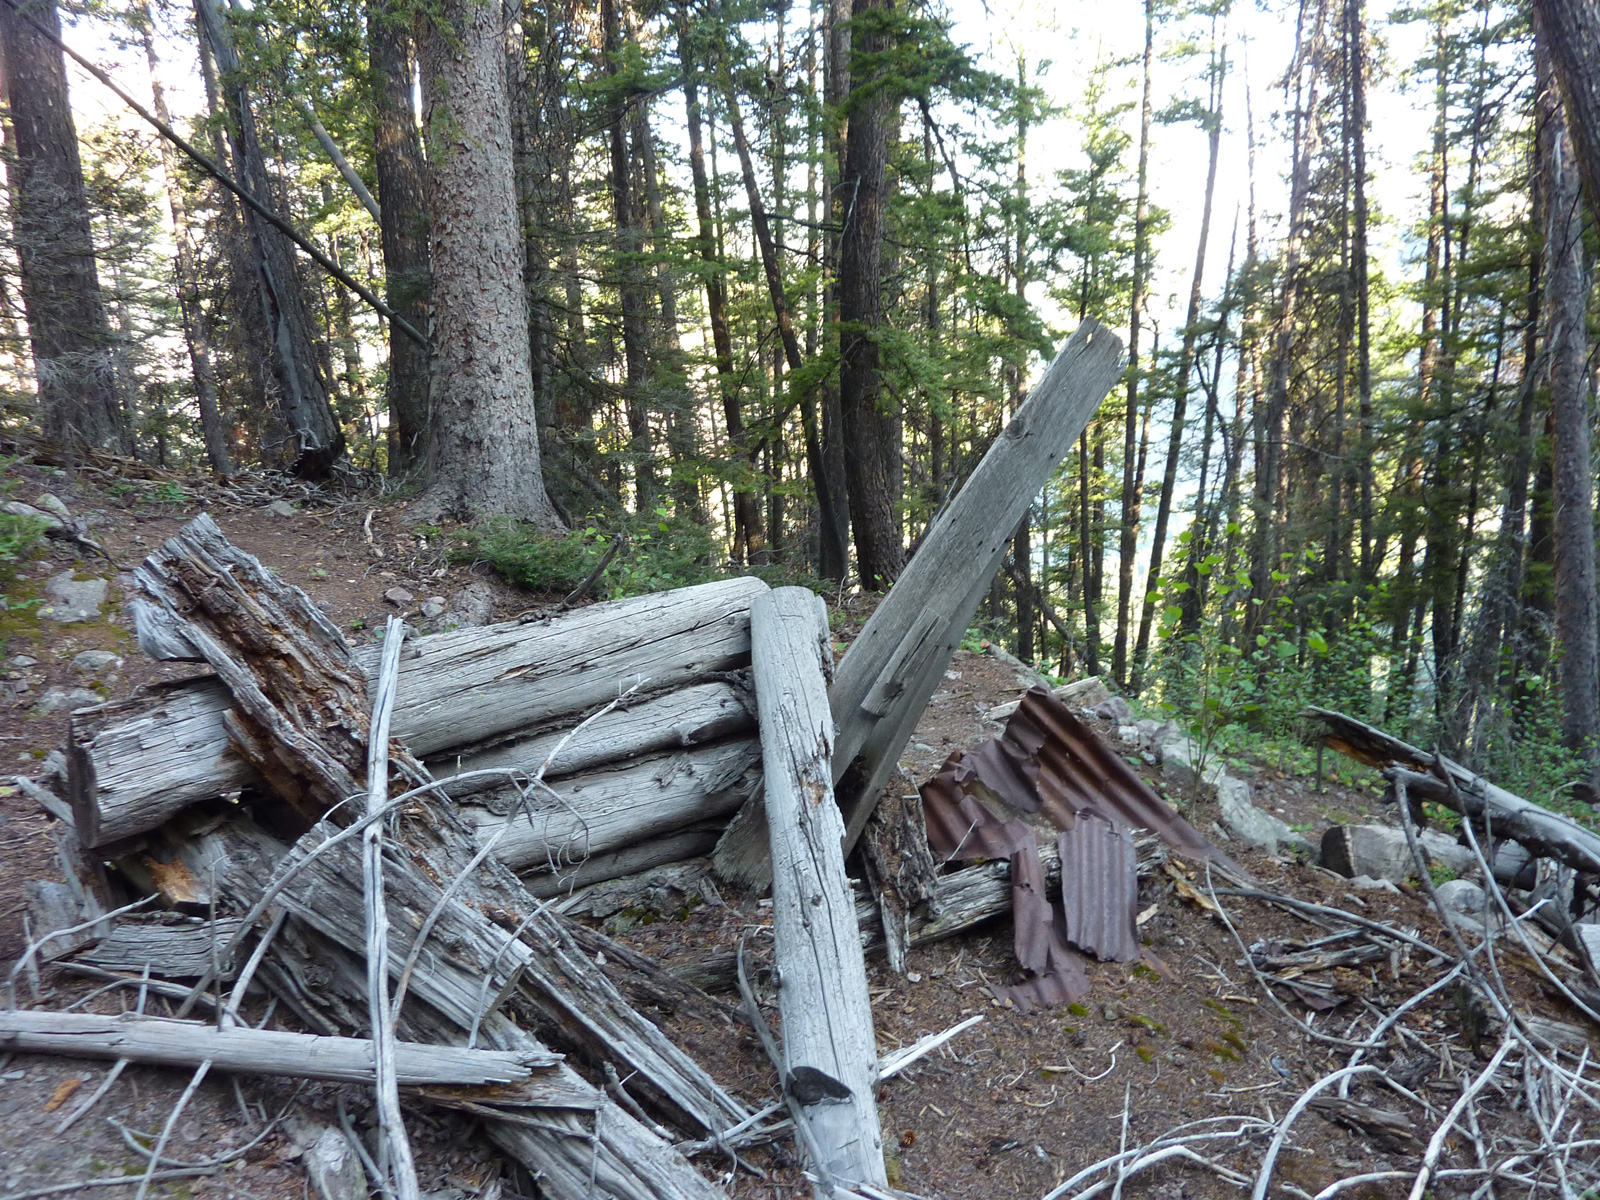 Ruins Of Lower Miner's Cabin Just Above Cliff. Click To Enlarge.